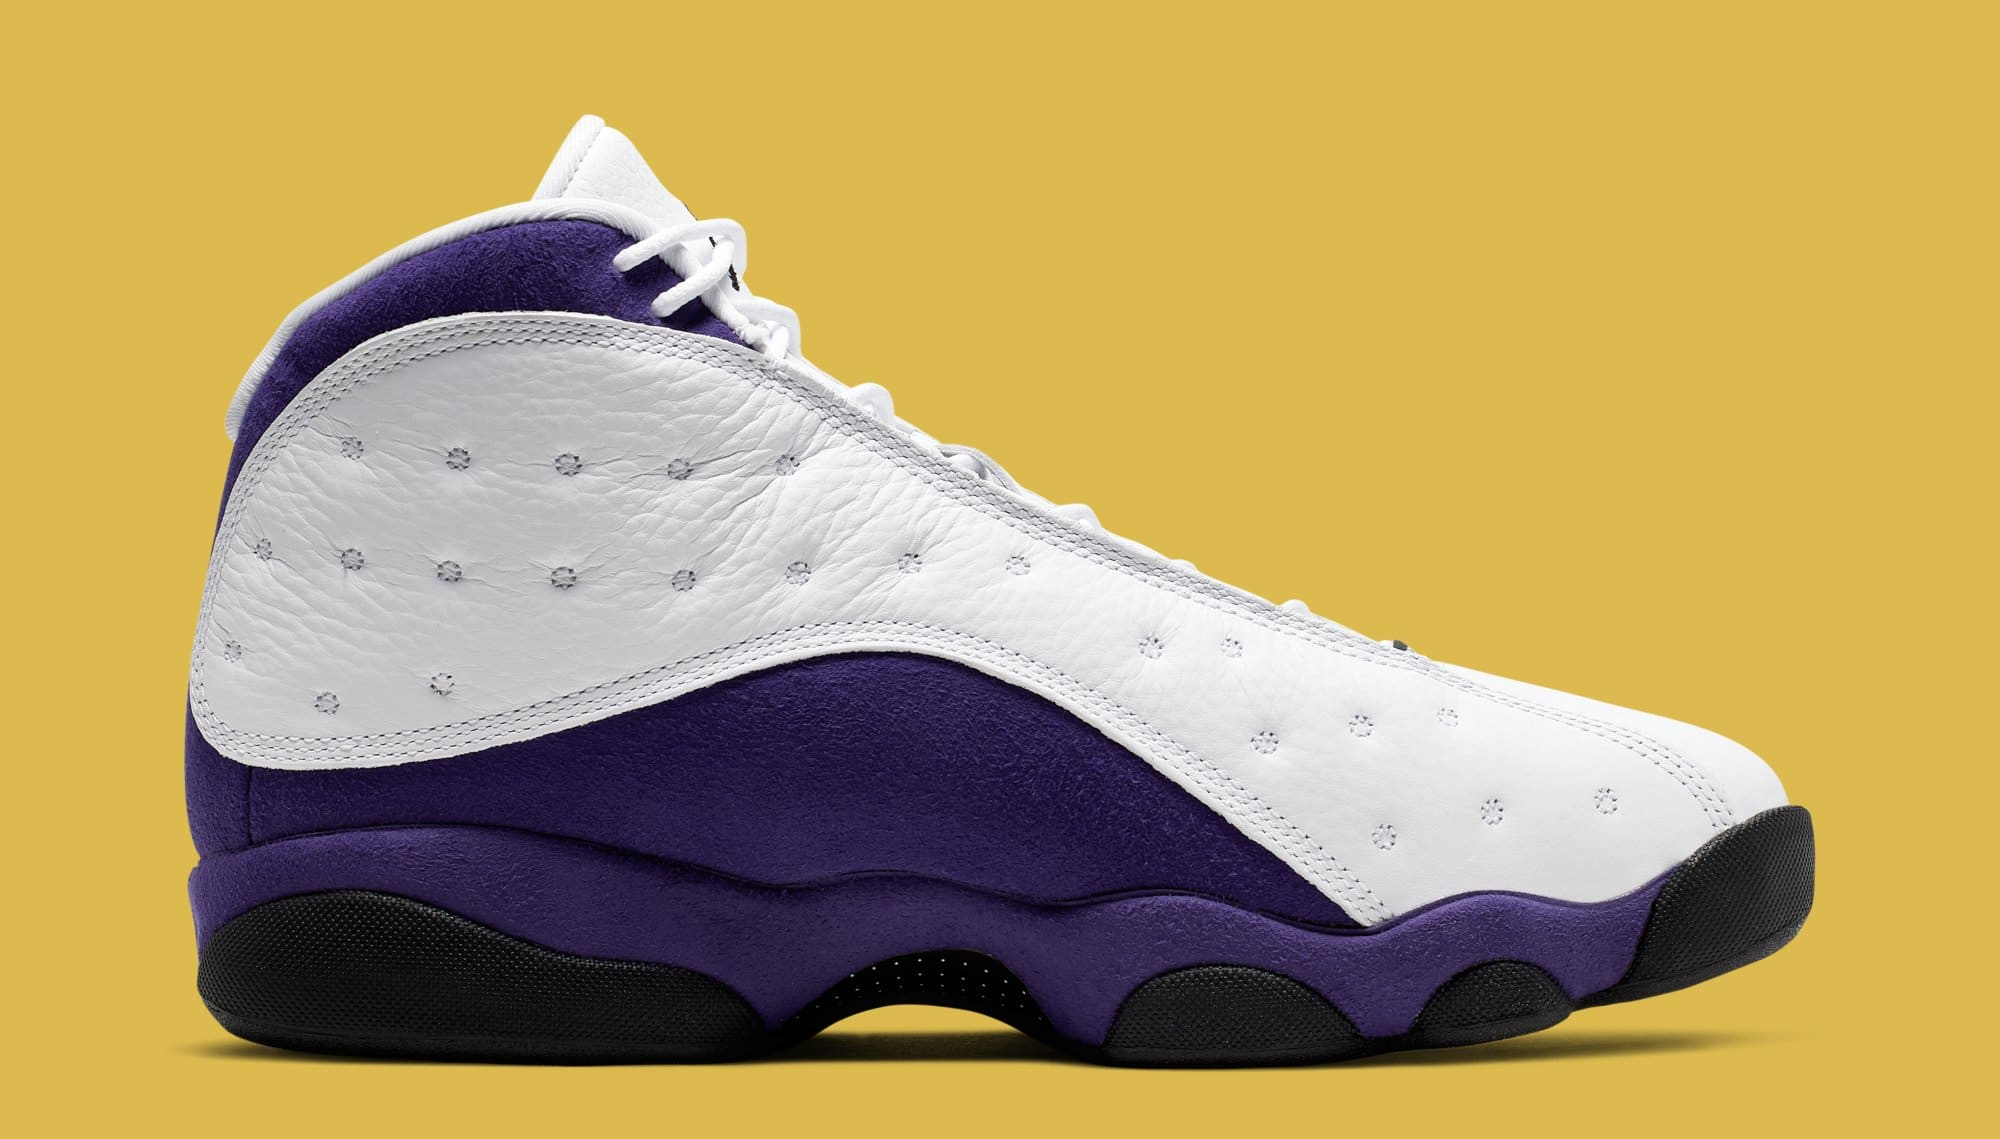 Air Jordan 13 'Lakers' White/Black/Court Purple/University Gold 414571-105 (Medial)